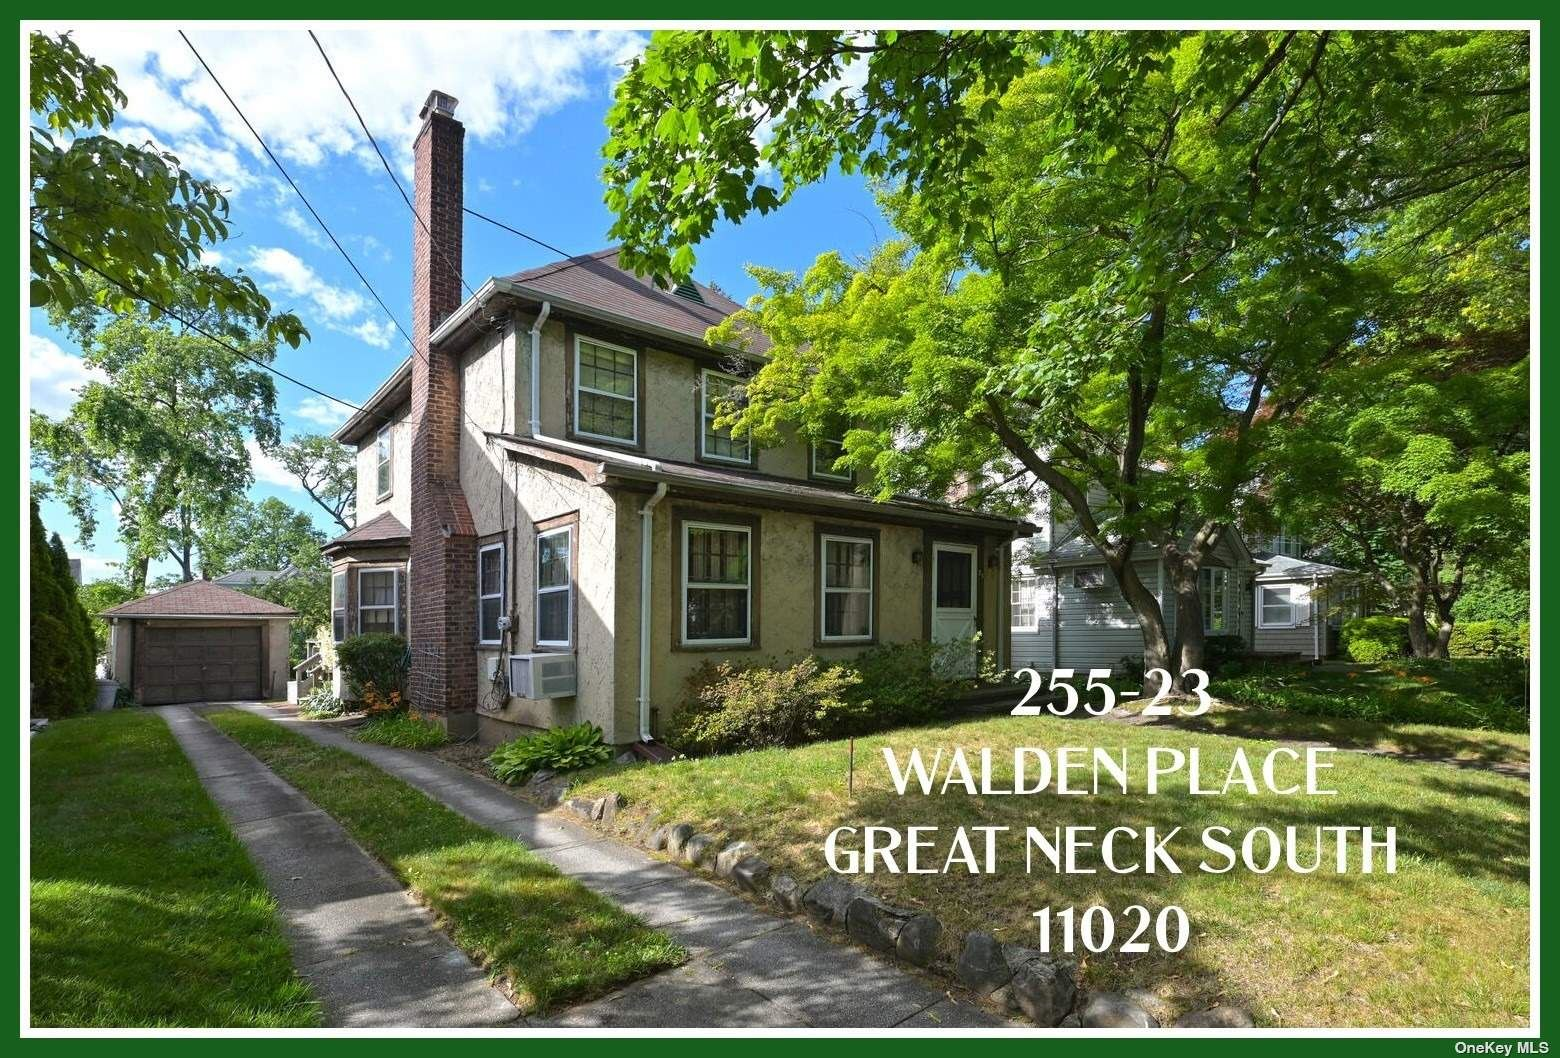 255-23 Walden Place, Great Neck, NY 11020 - MLS#: 3324573